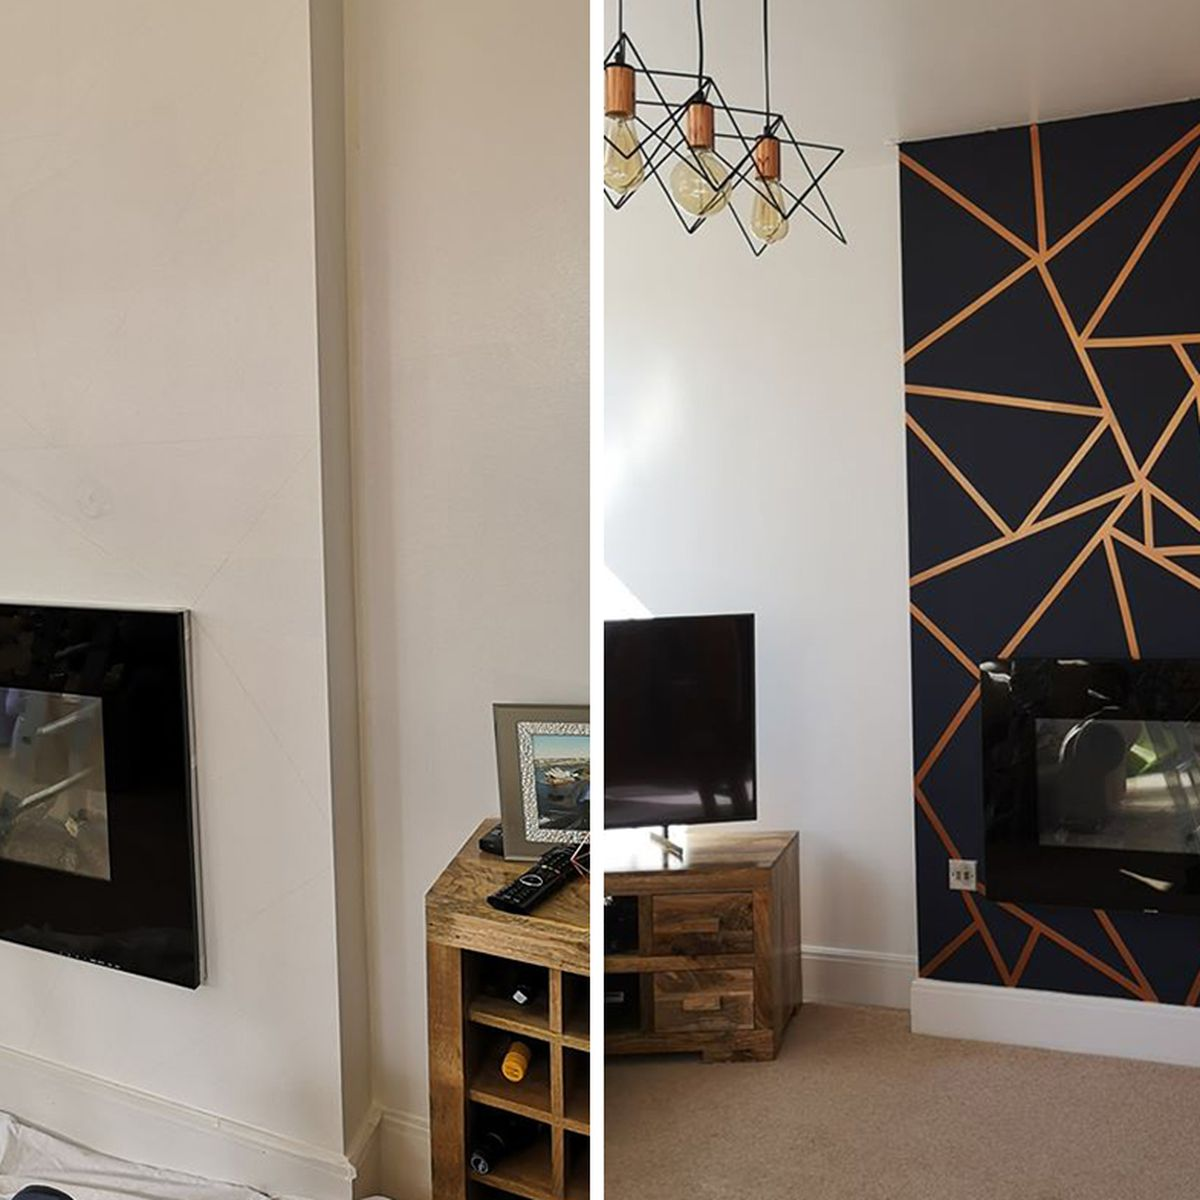 Geometric feature wall: Woman creates her own using painters frog